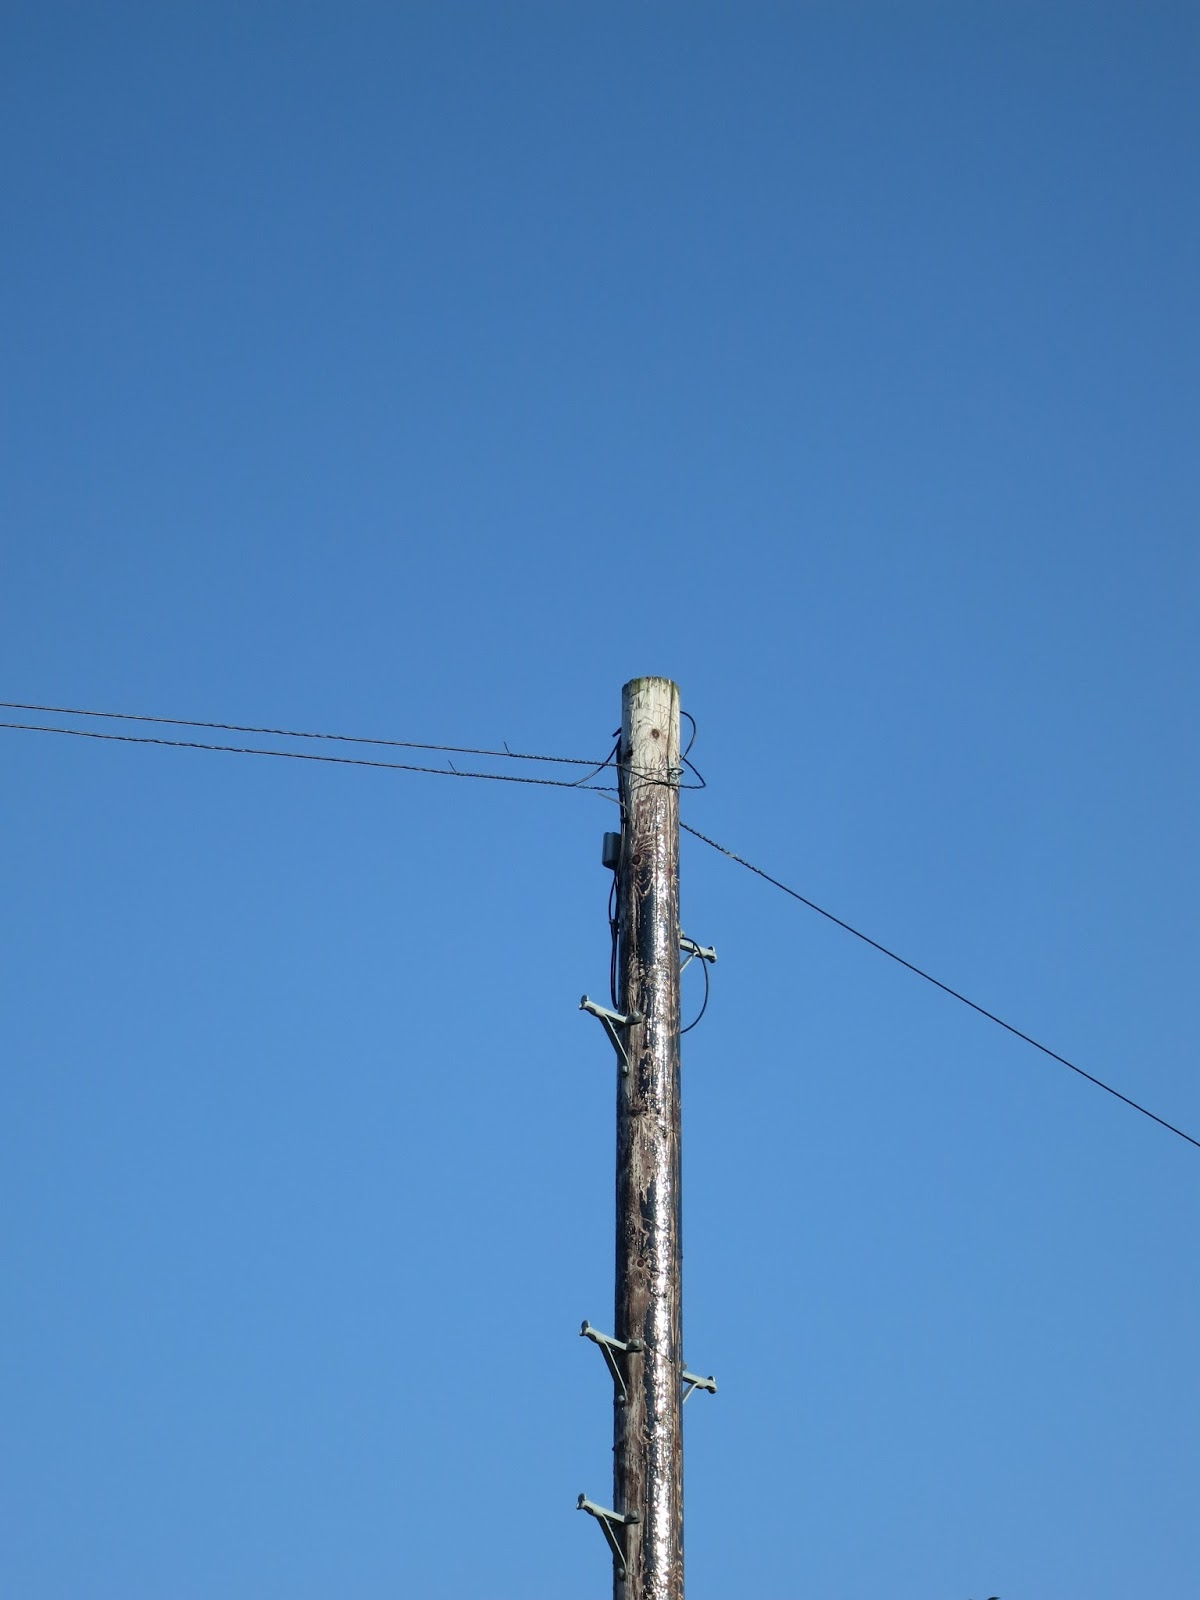 Glossy black, wooden telegraph pole with wires against blue sky